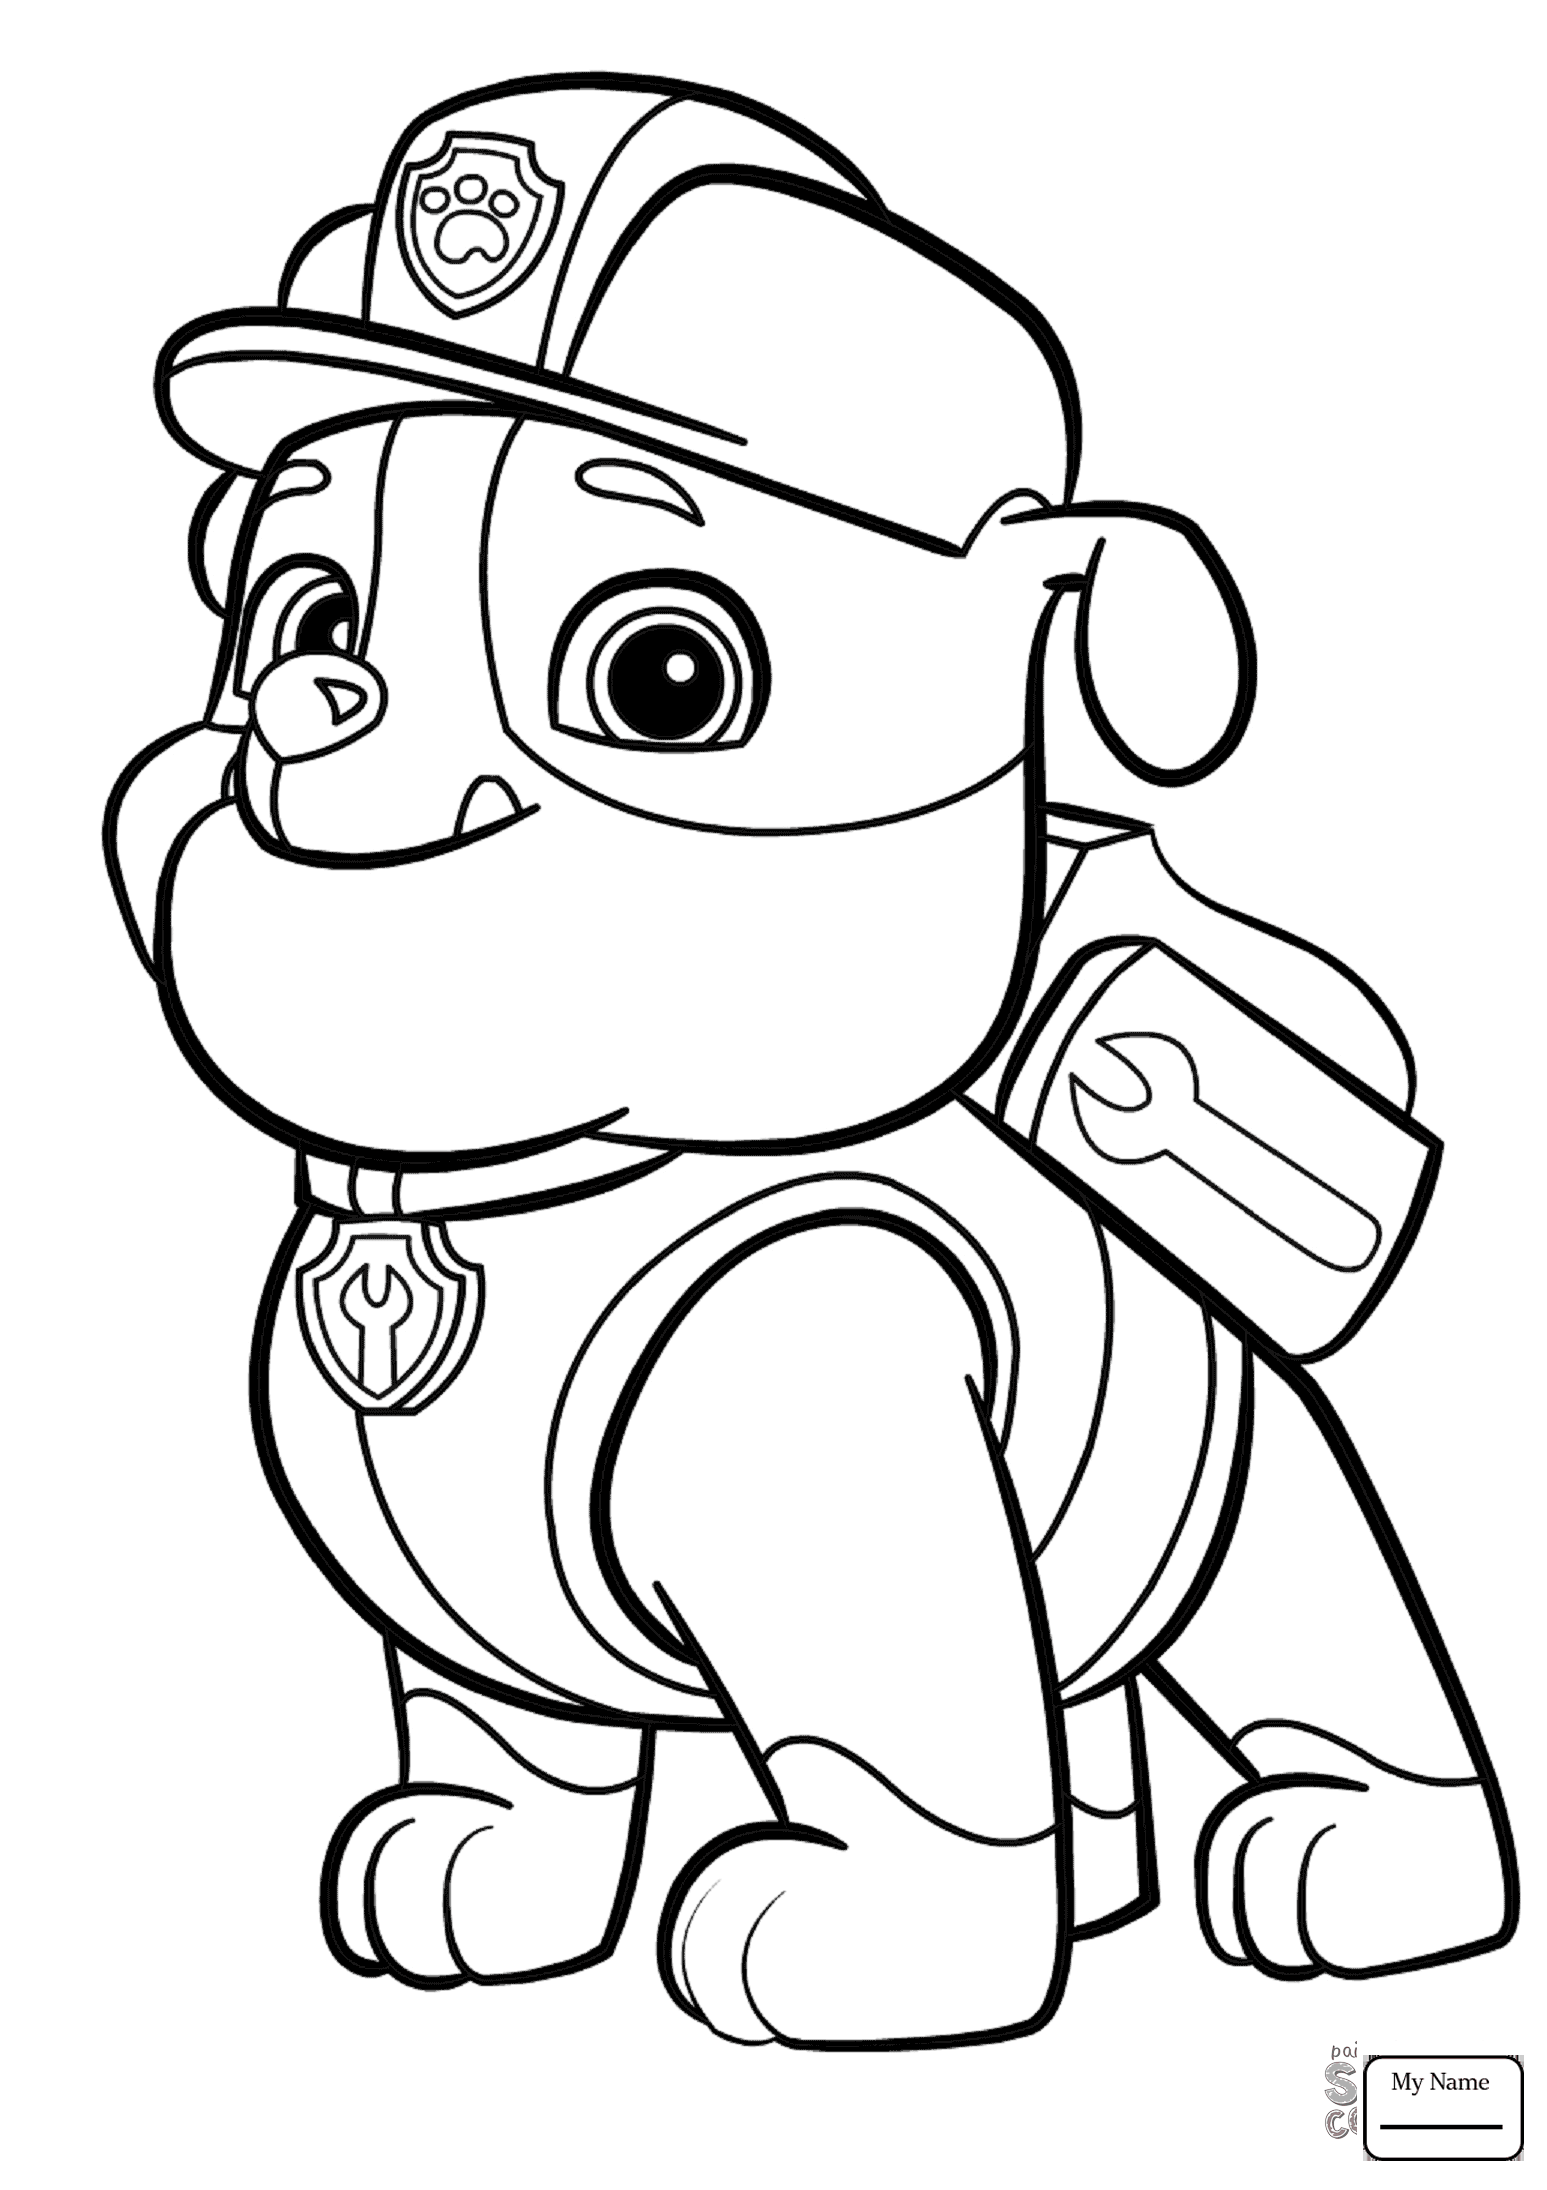 1547x2190 Coloring Pages For Kids Cartoons Paw Patrol Marshall Puppy